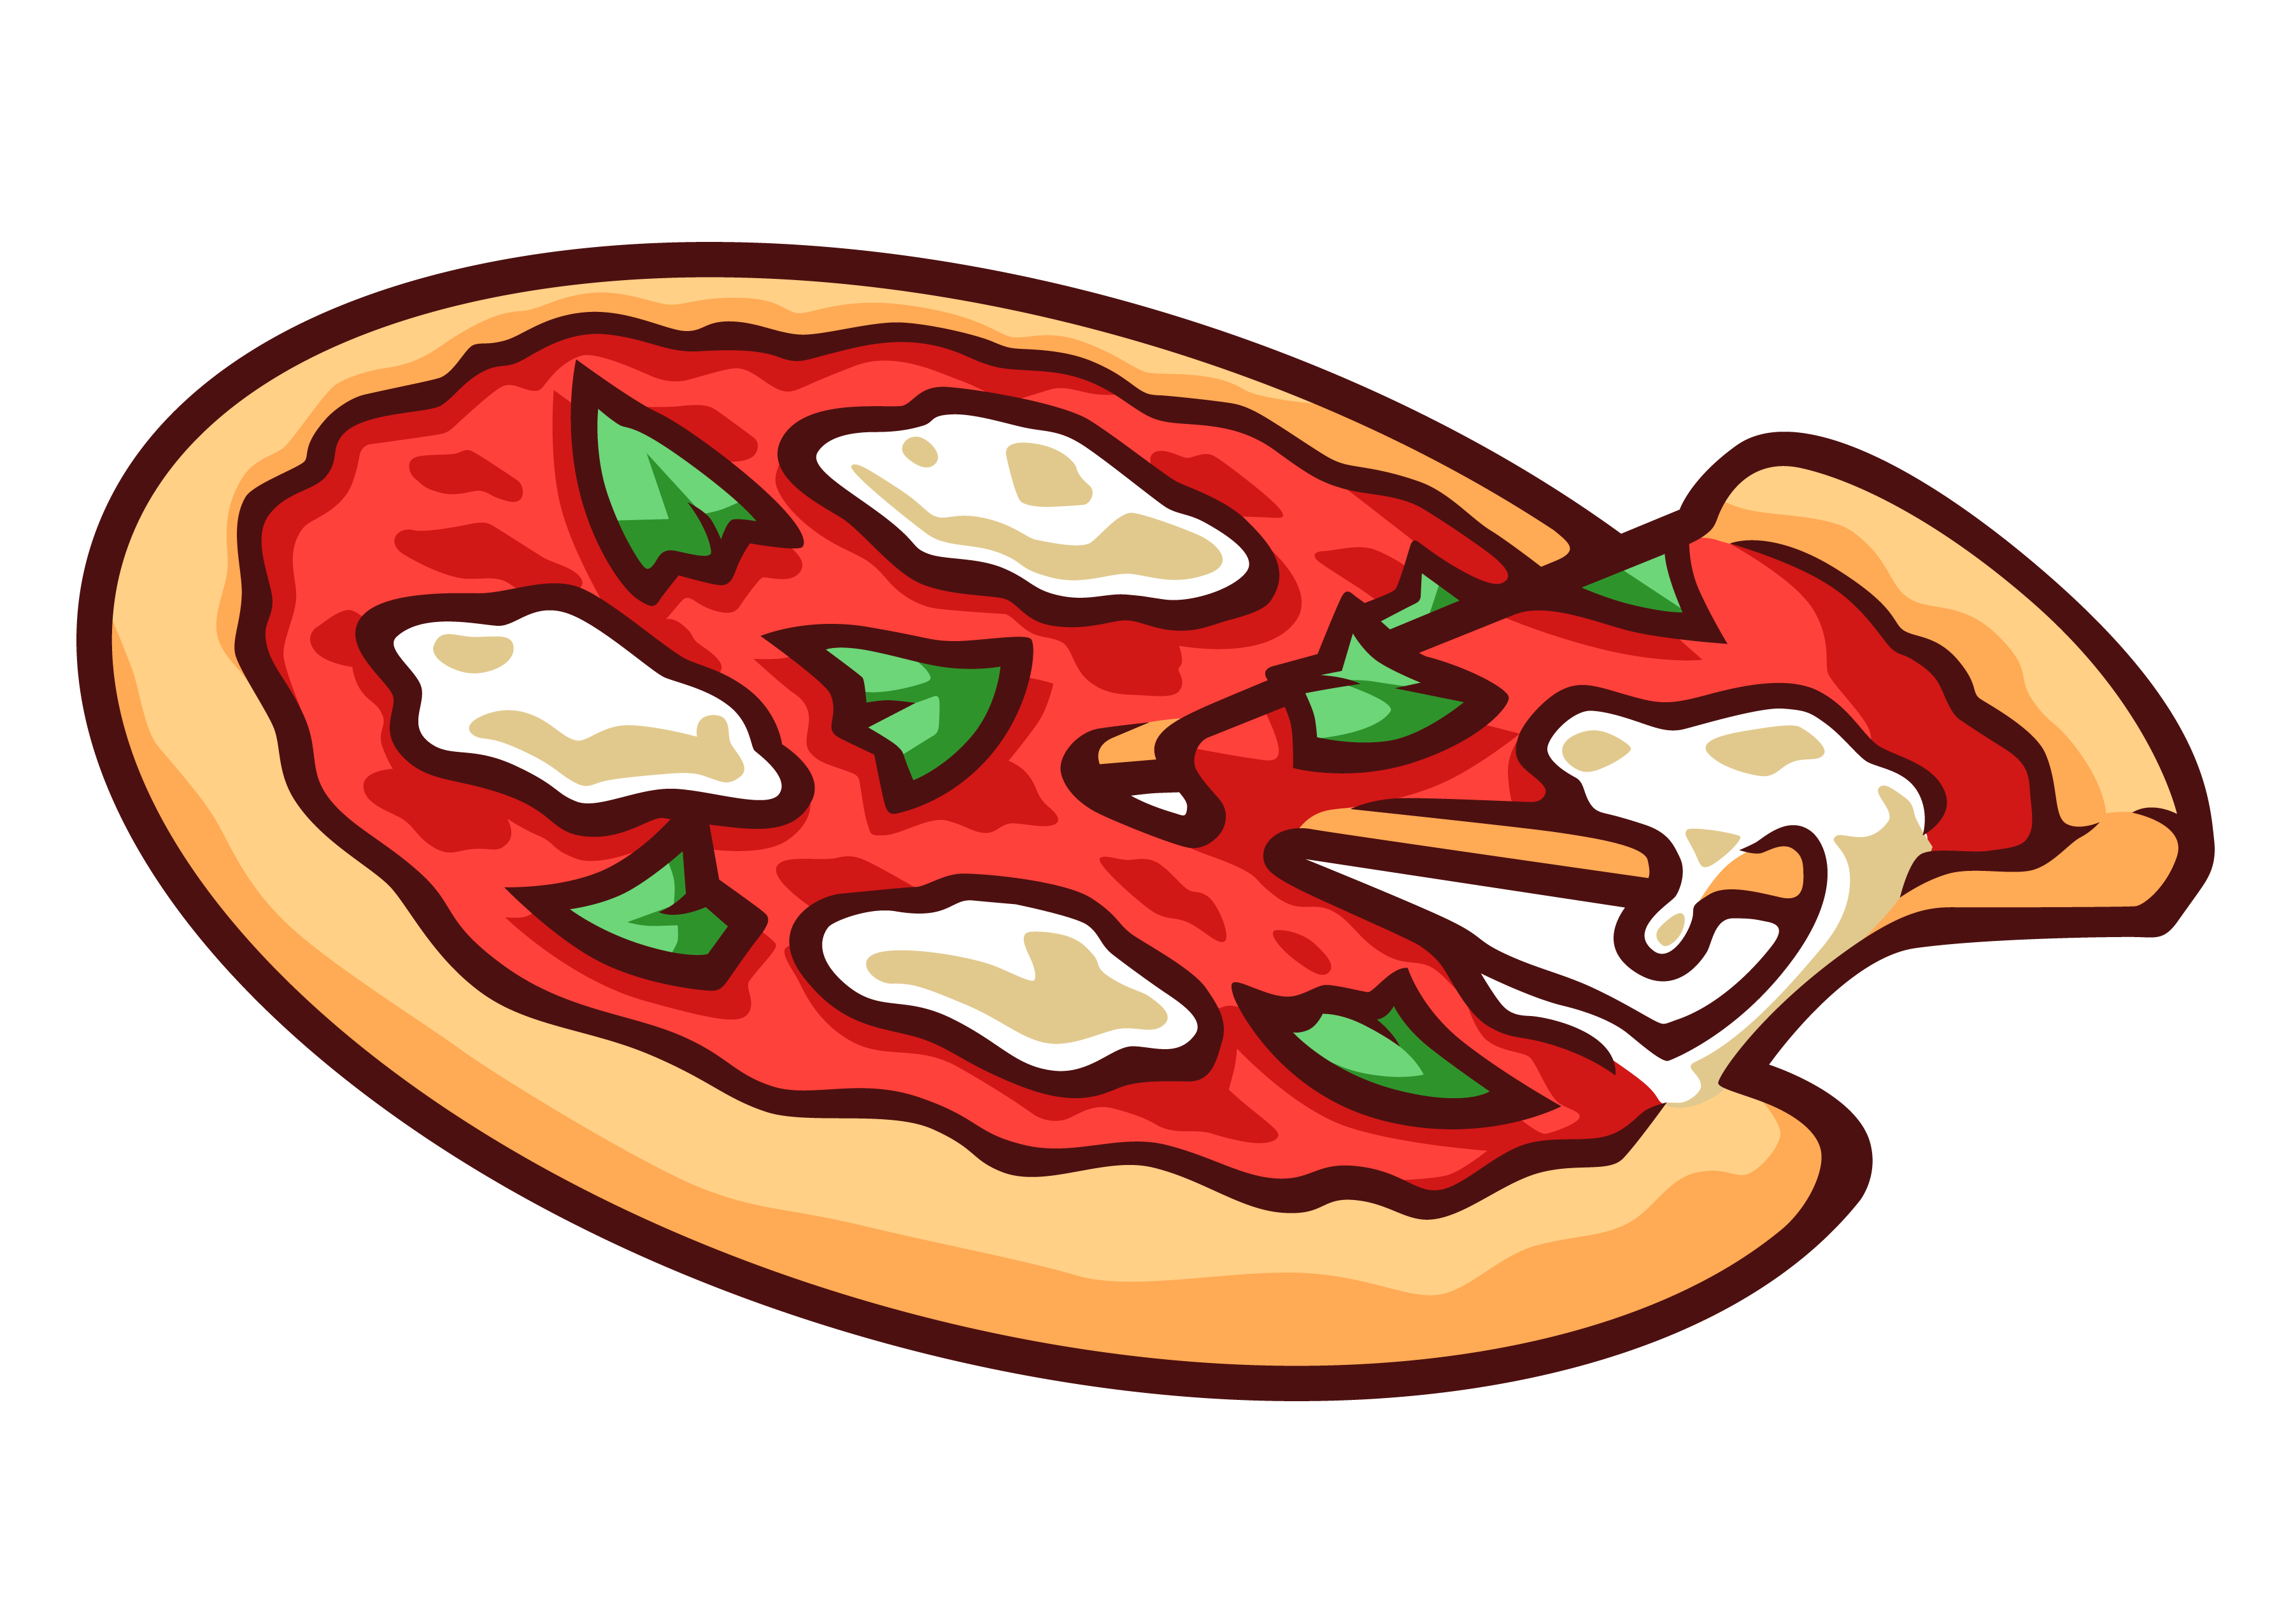 whole pizza clip art whole pizza image id-44097 | Clipart PIctures